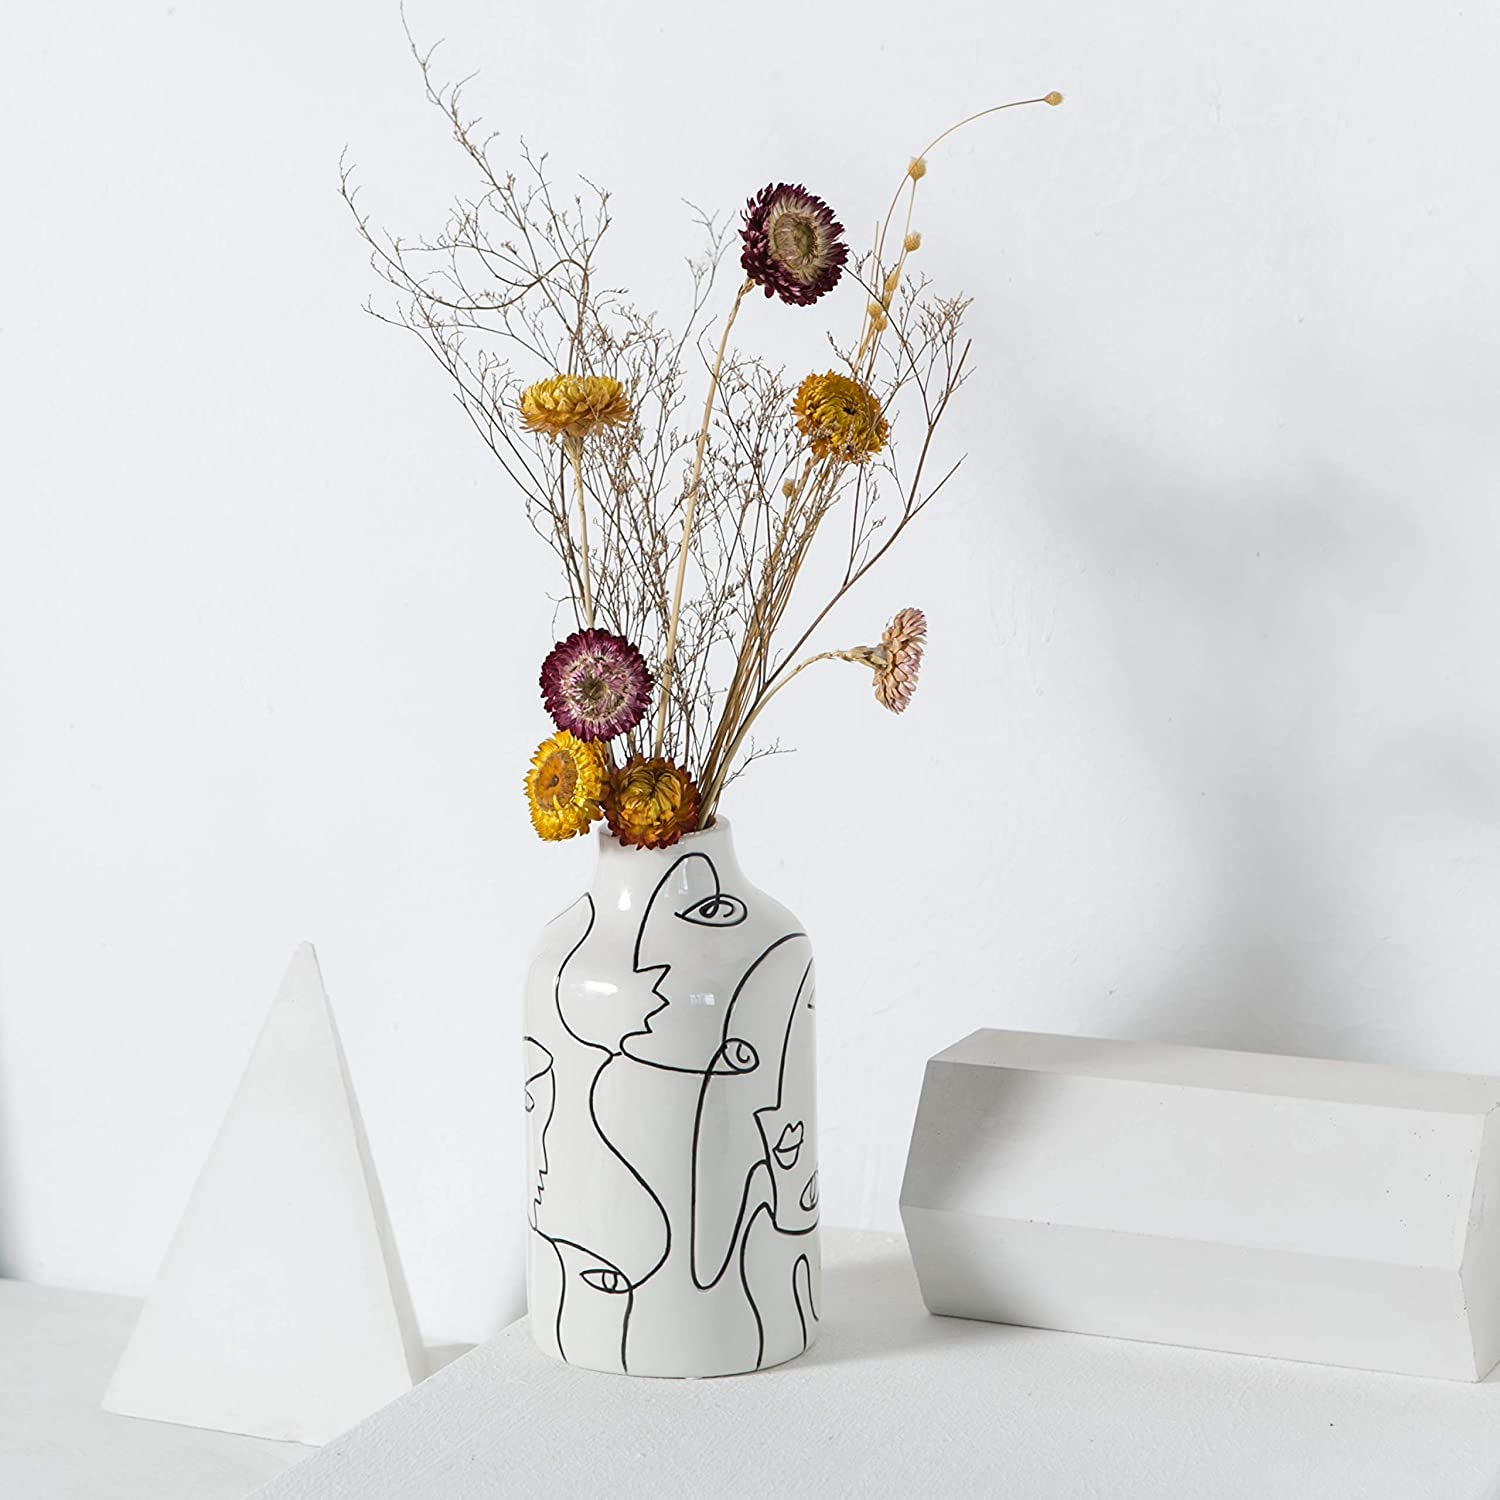 a white vase with abstract faces outlined on it in black